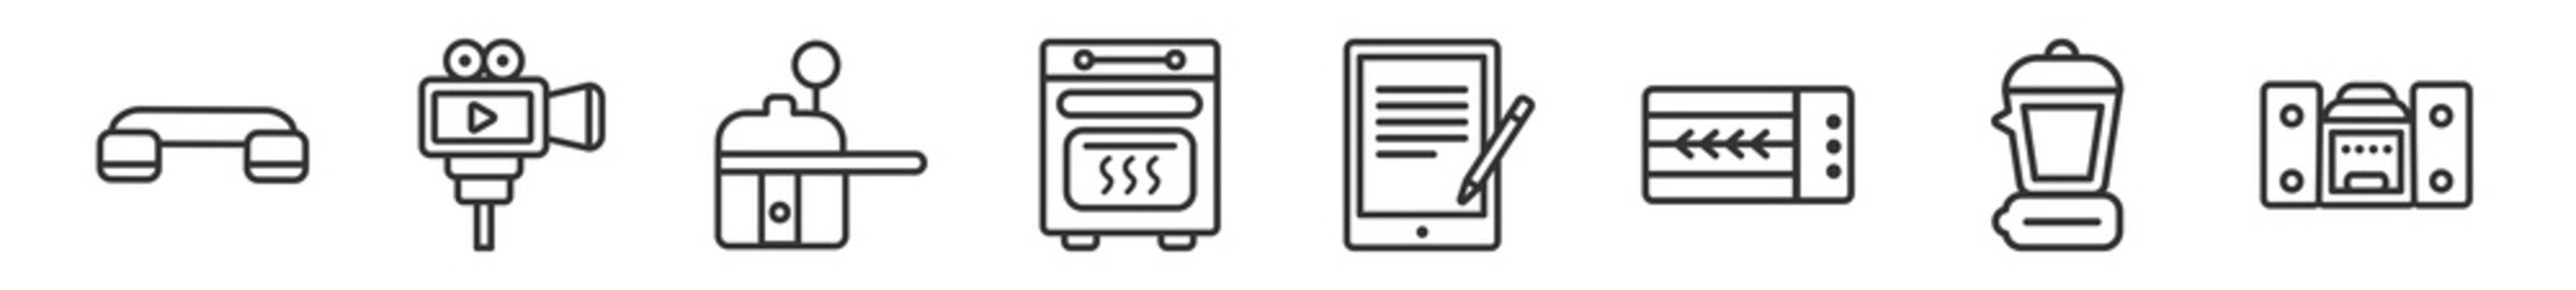 outline set of electronic devices line icons. linear vector icons such as telephone, video recorder, pressure cooker, convection oven, book reader, stereo. vector illustration.